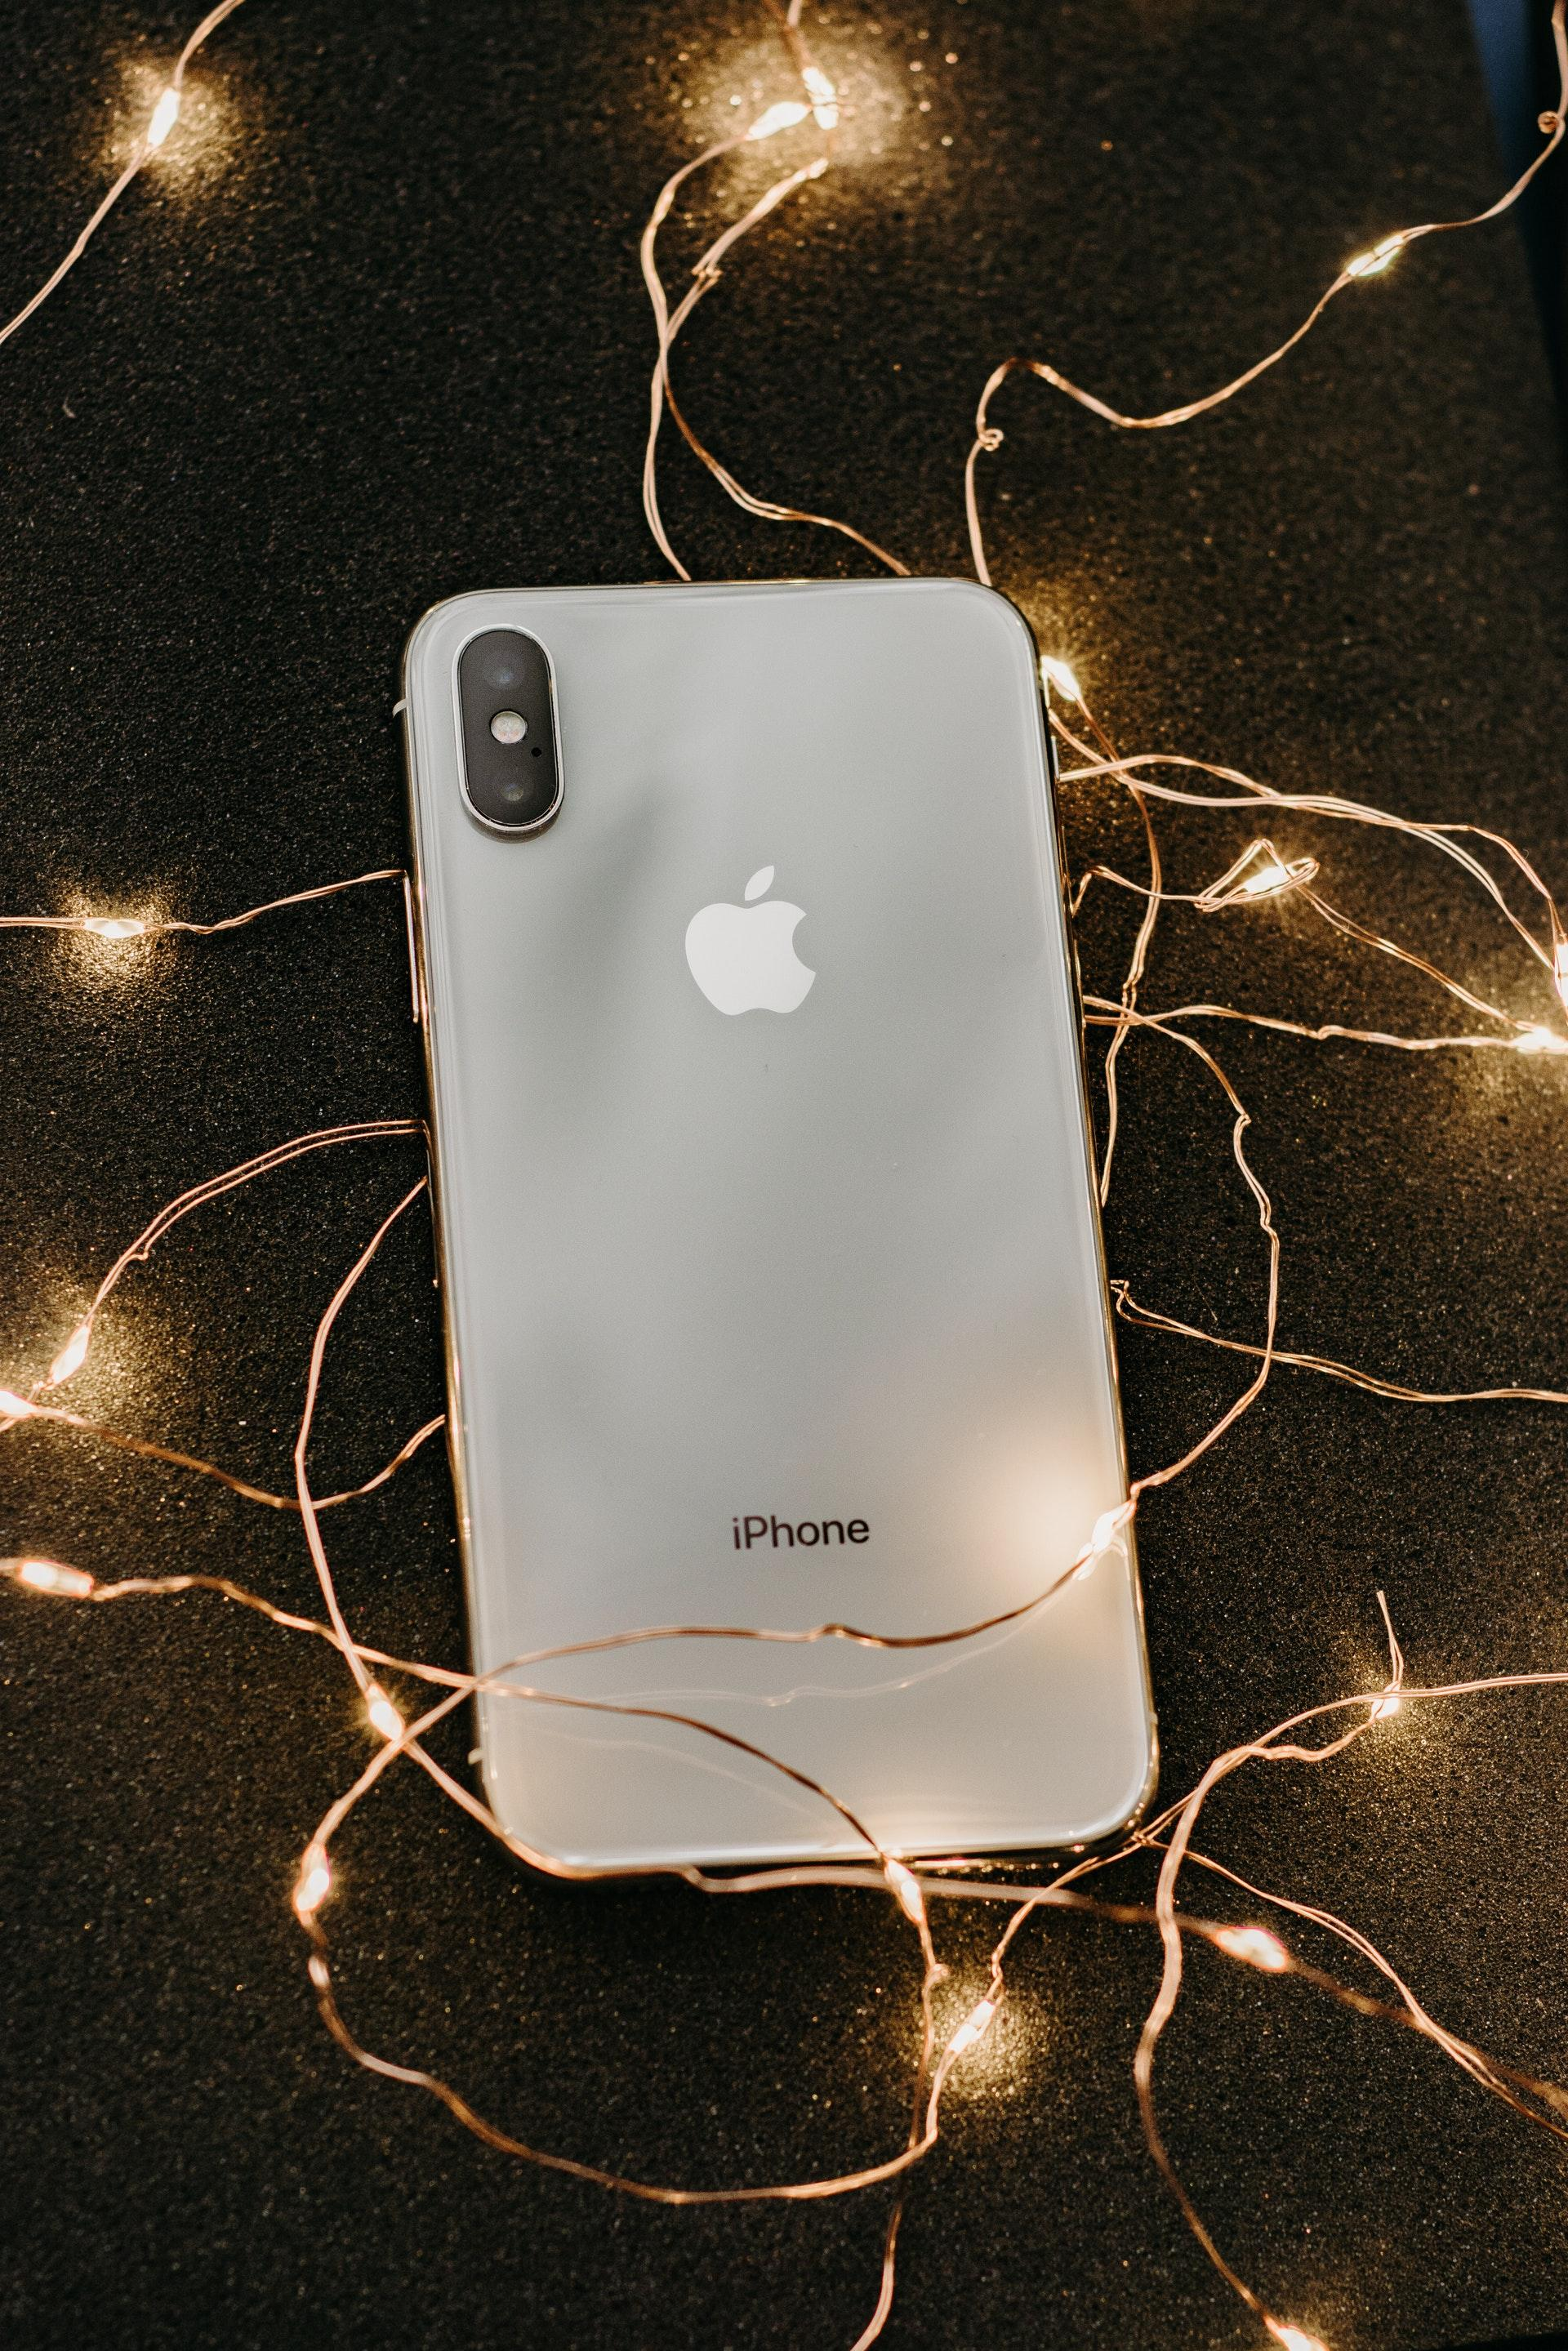 silver-iphone-x-lying-on-pre-lit-string-lights-1647976